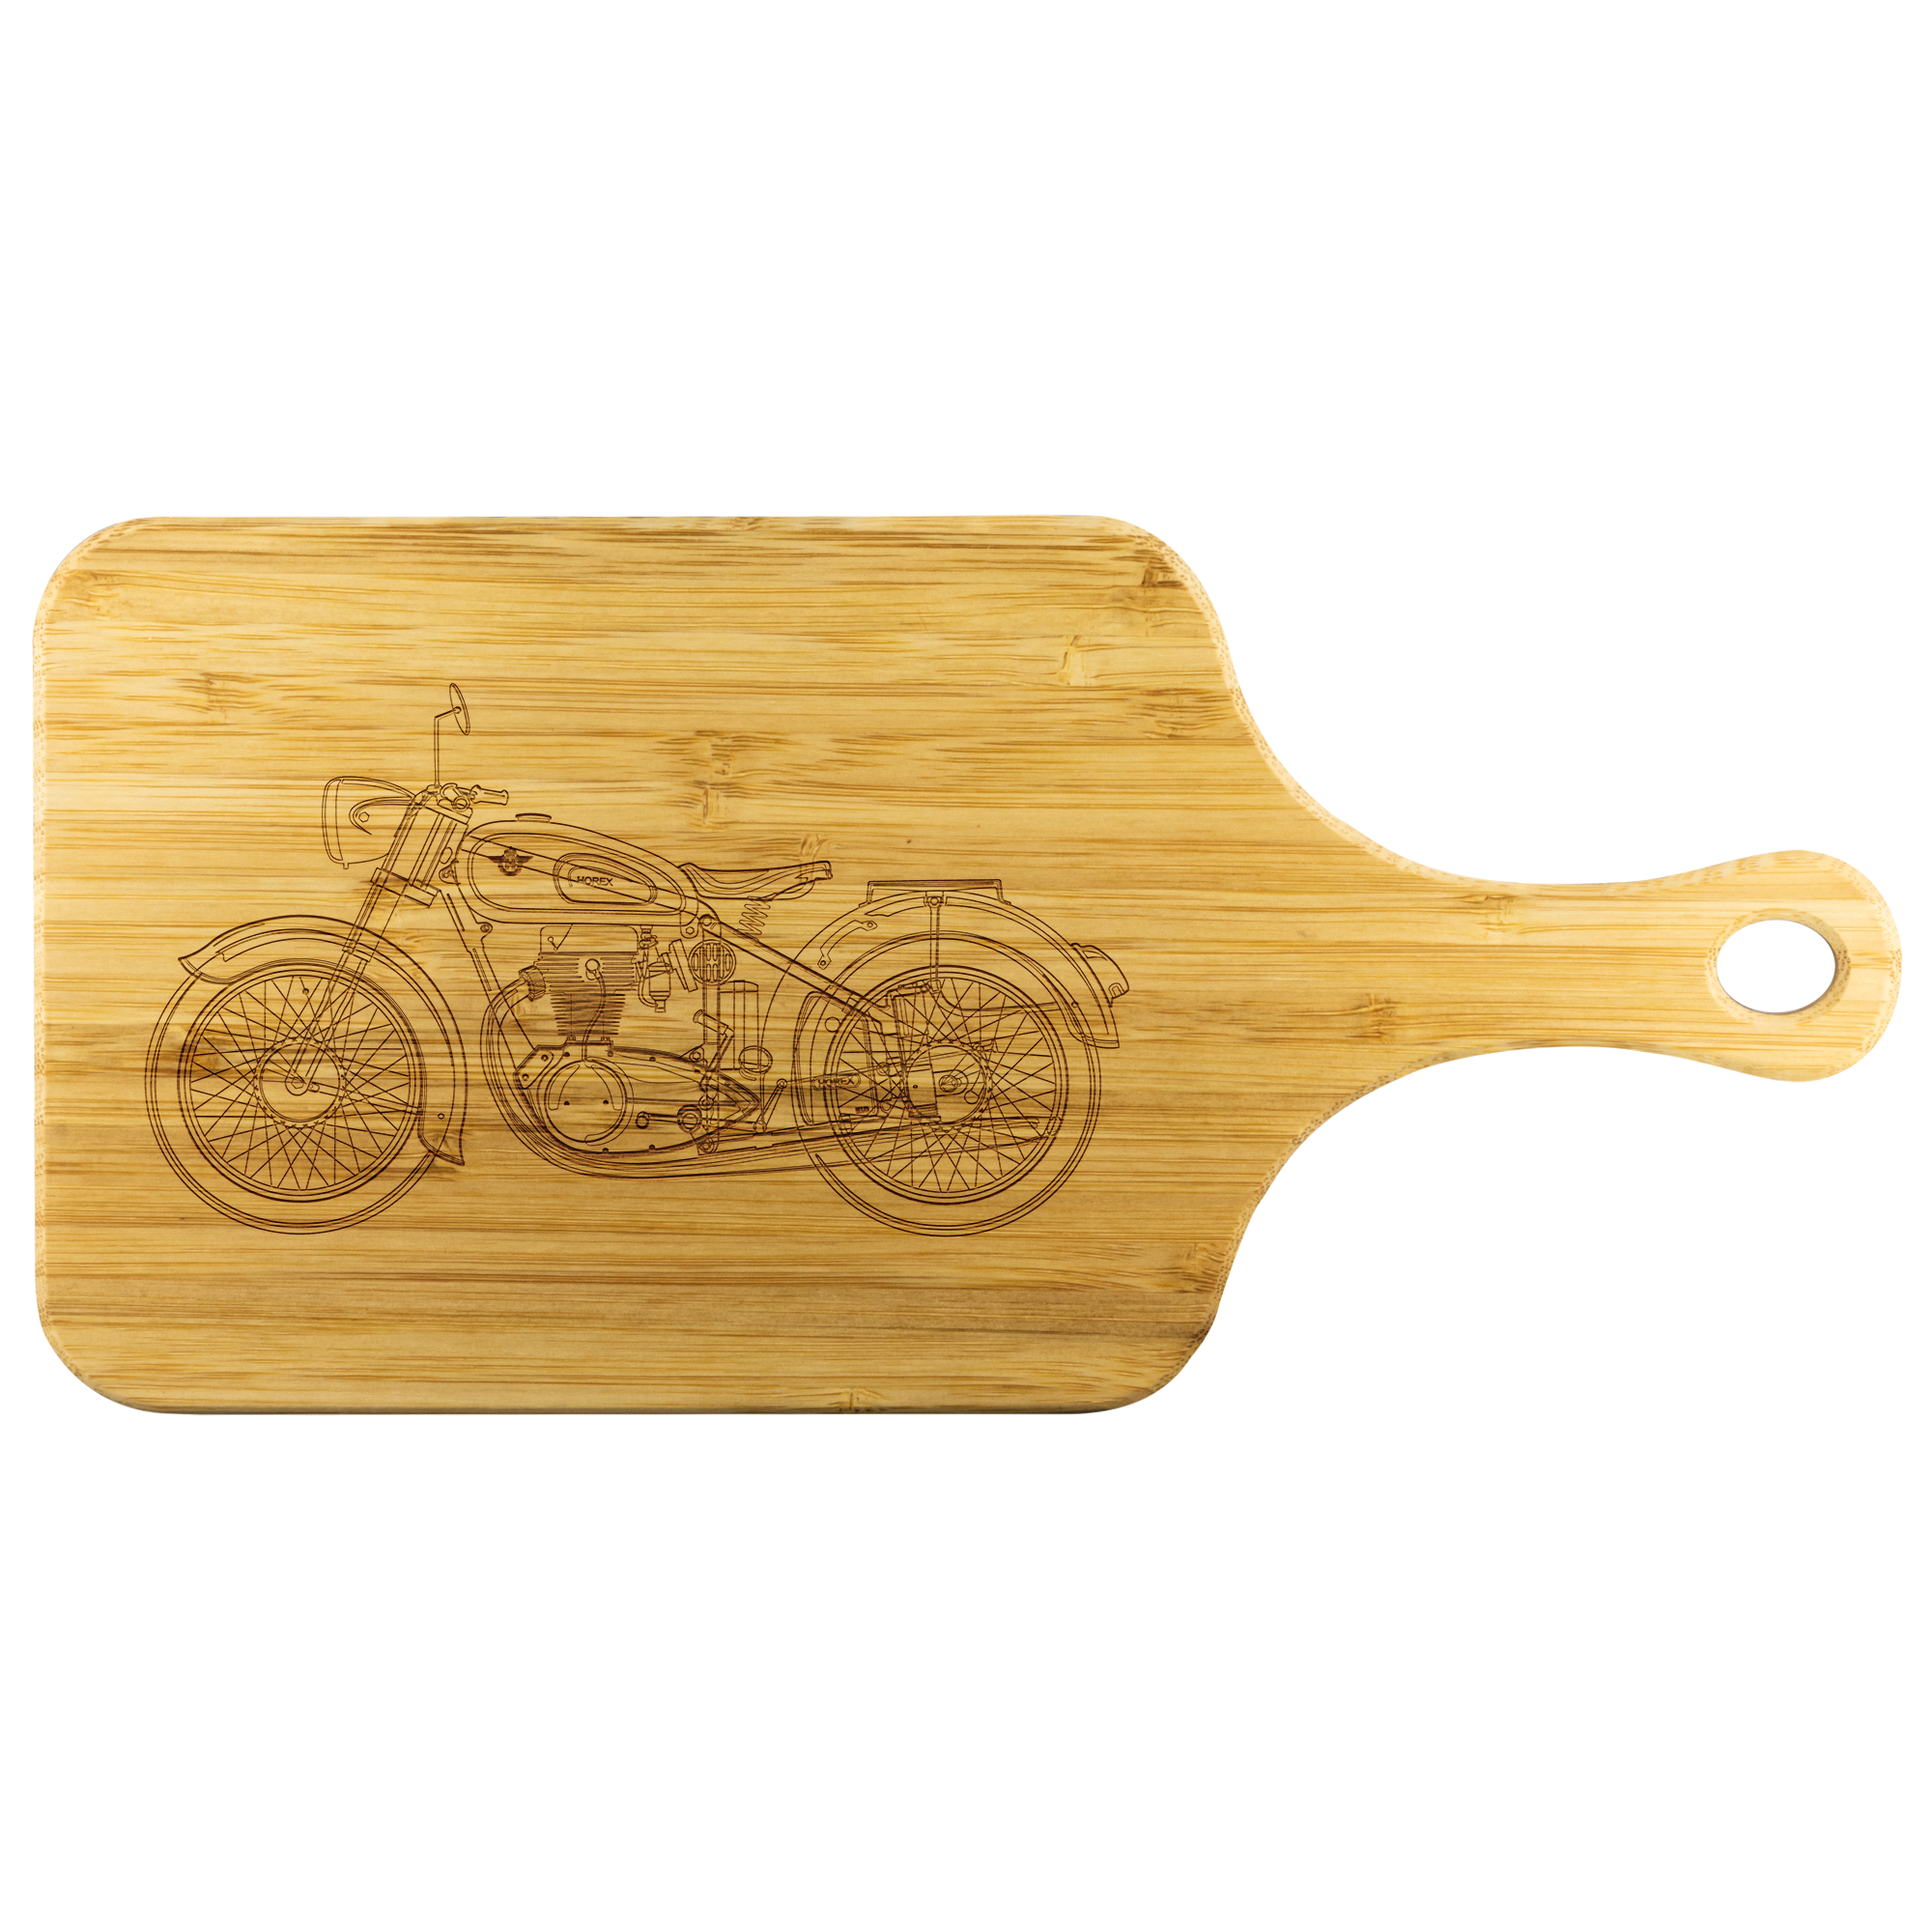 Motor Cycle - Wood Cutting Board With Handle